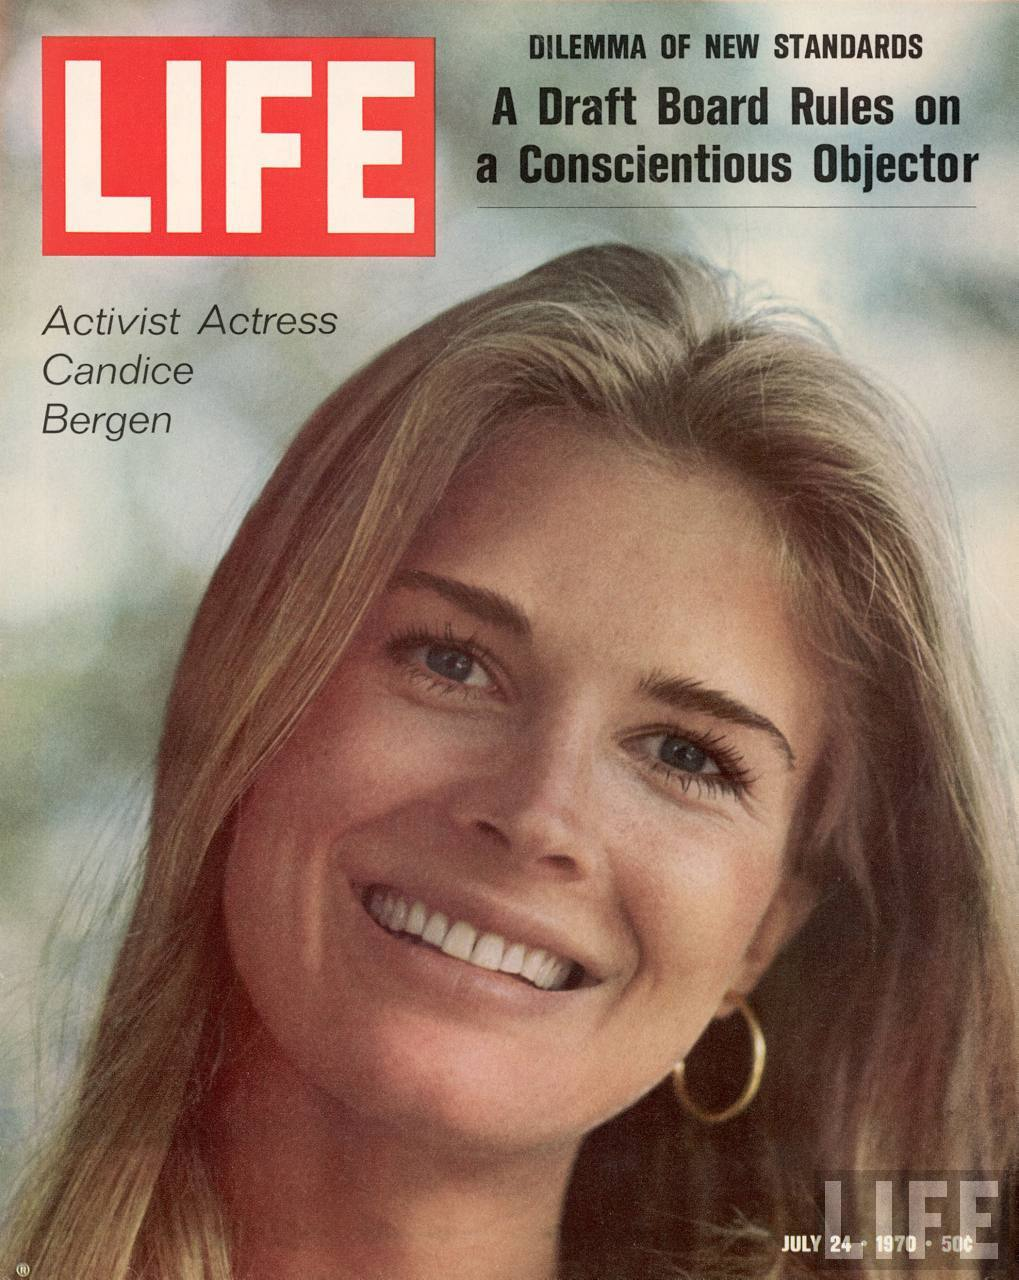 LIFE magazine cover dated 07-24-1970 w. logo & legend Activist Actress Candice Bergen, Photo by Michael Mauney, LIFE Magazine, © Time Inc.